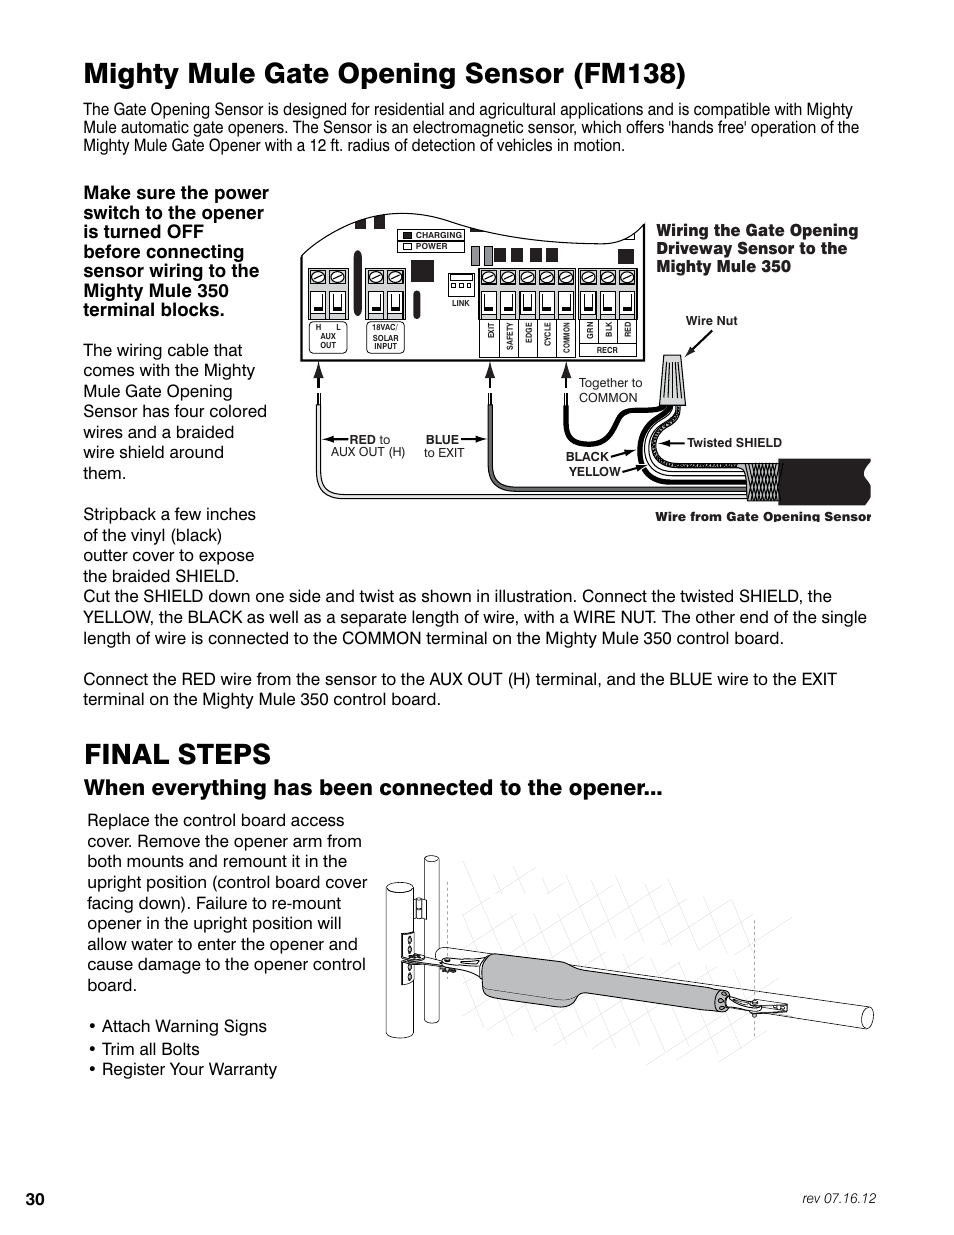 final steps, mighty mule gate opening sensor (fm138), when everything has  been connected to the opener | mighty mule fm350 user manual | page 34 / 44  manuals directory